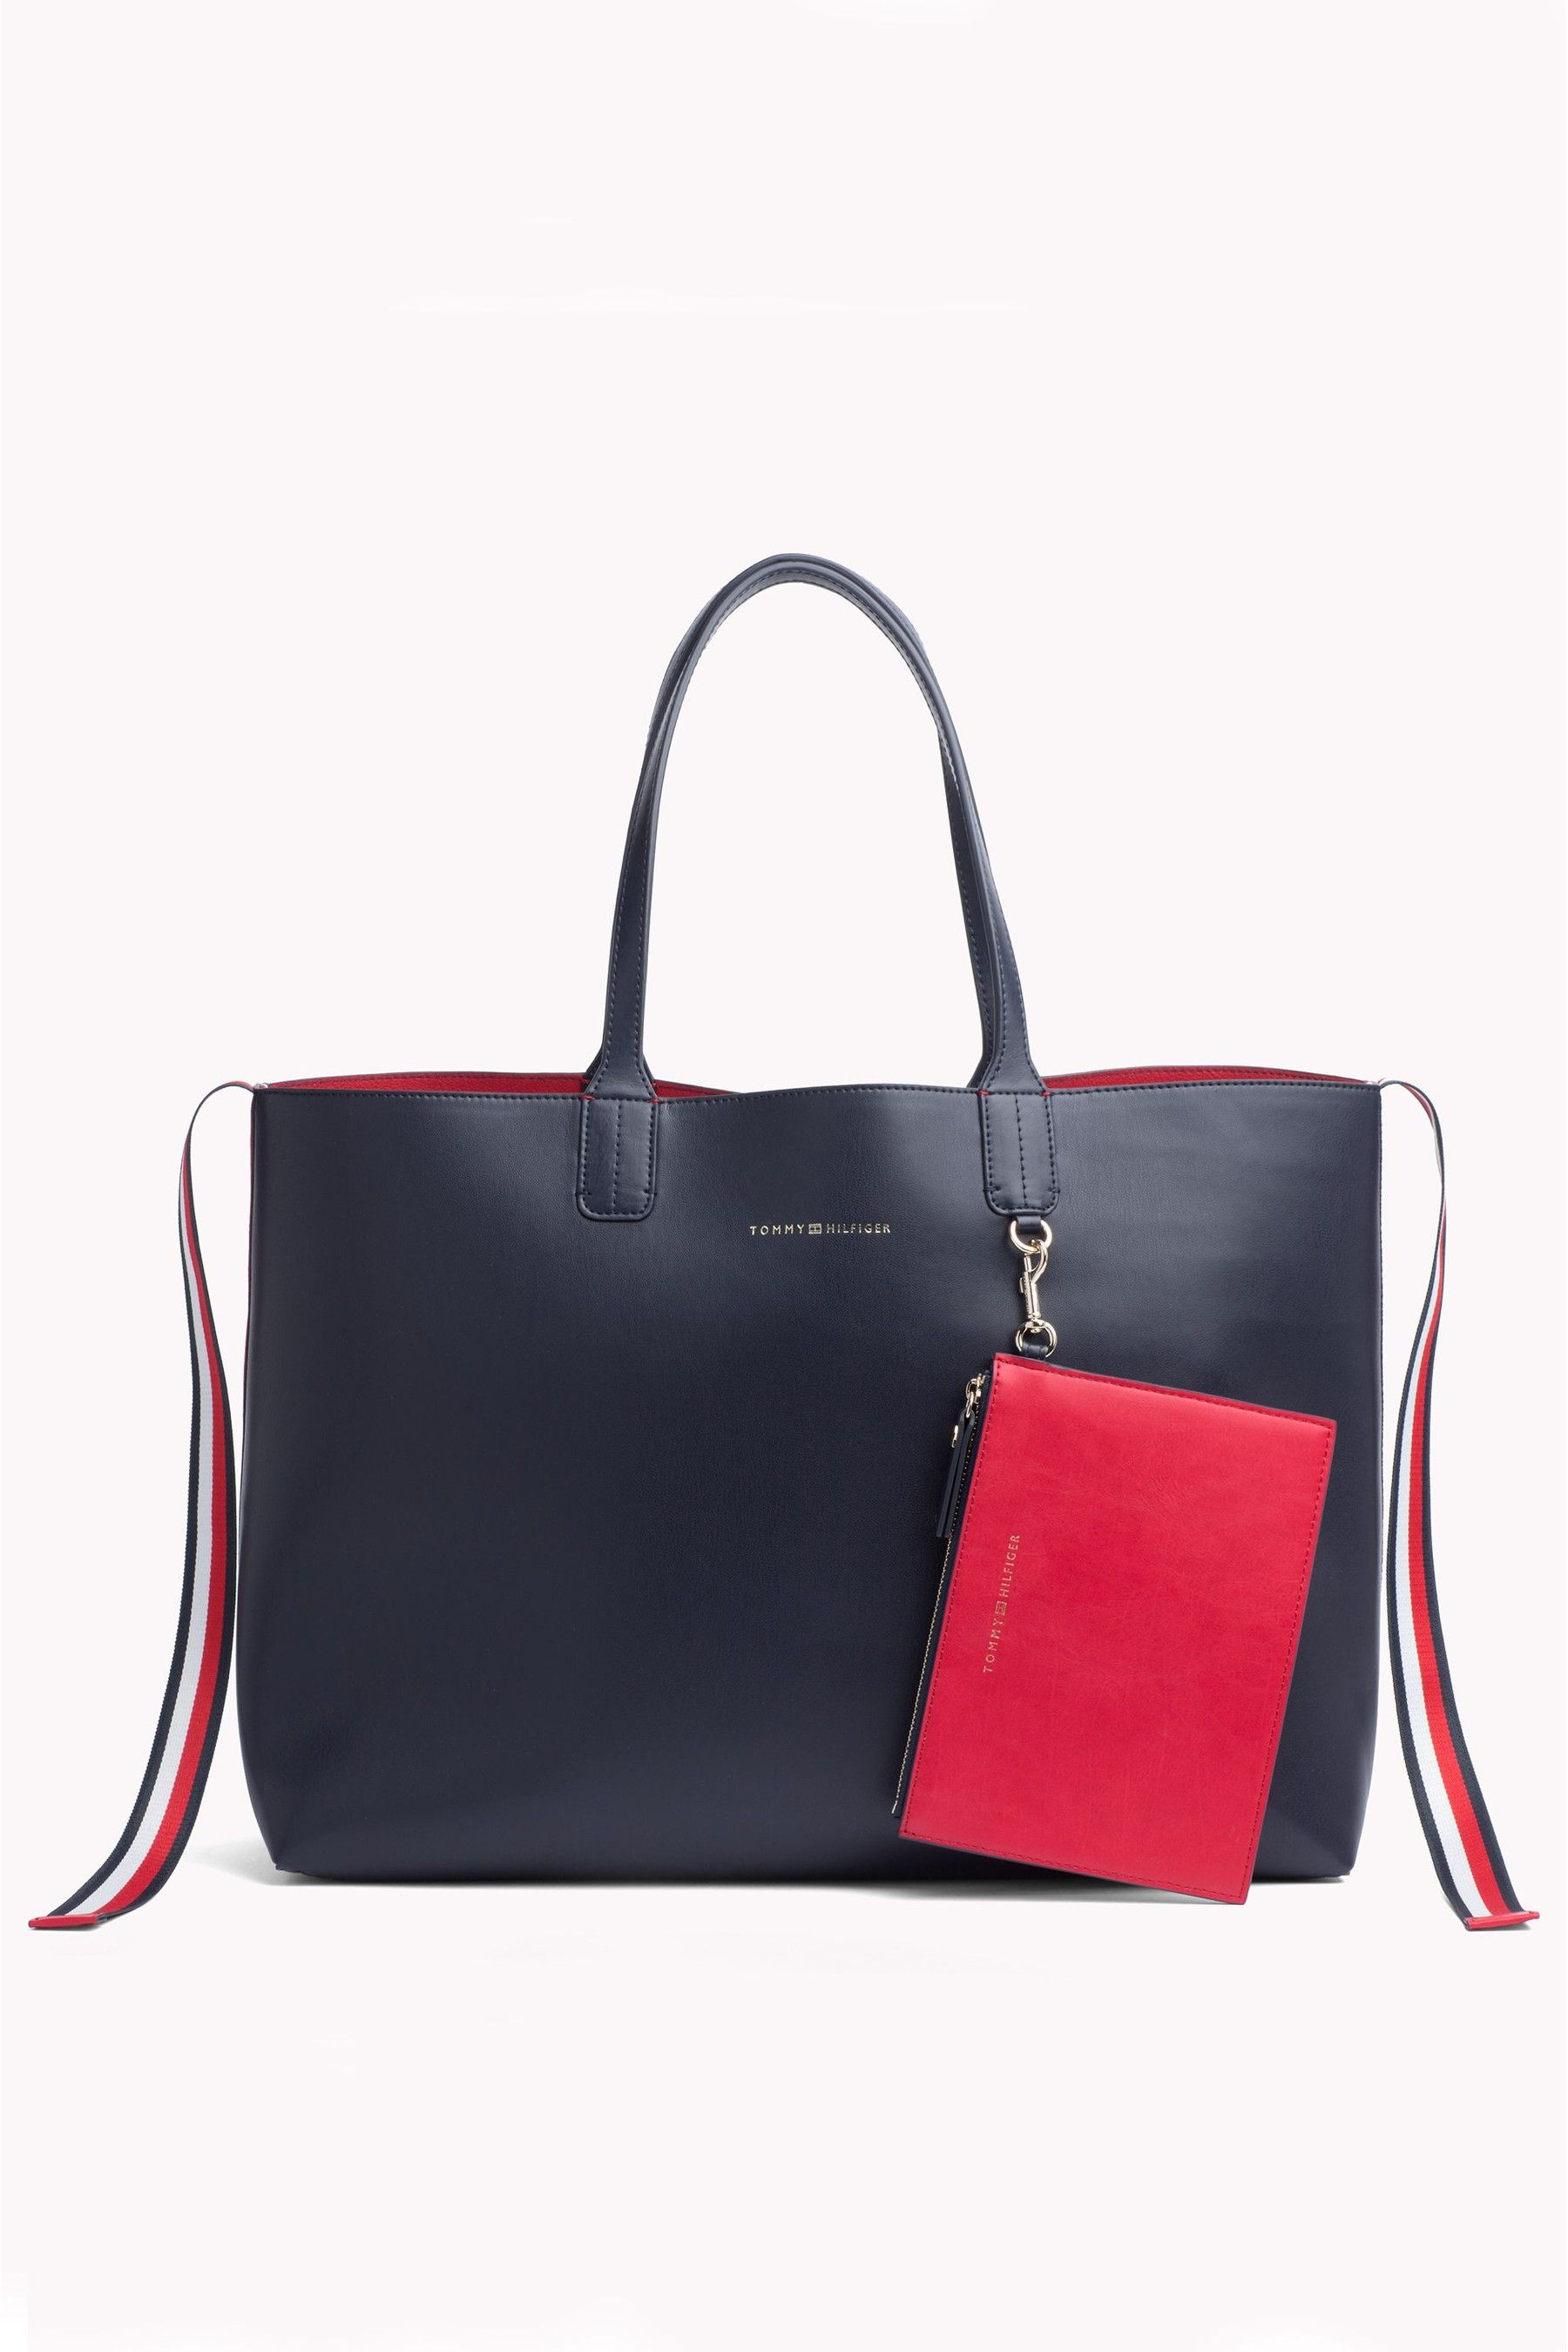 Tommy Hilfiger Red Cool Tommy Faux Fur Tote Bag